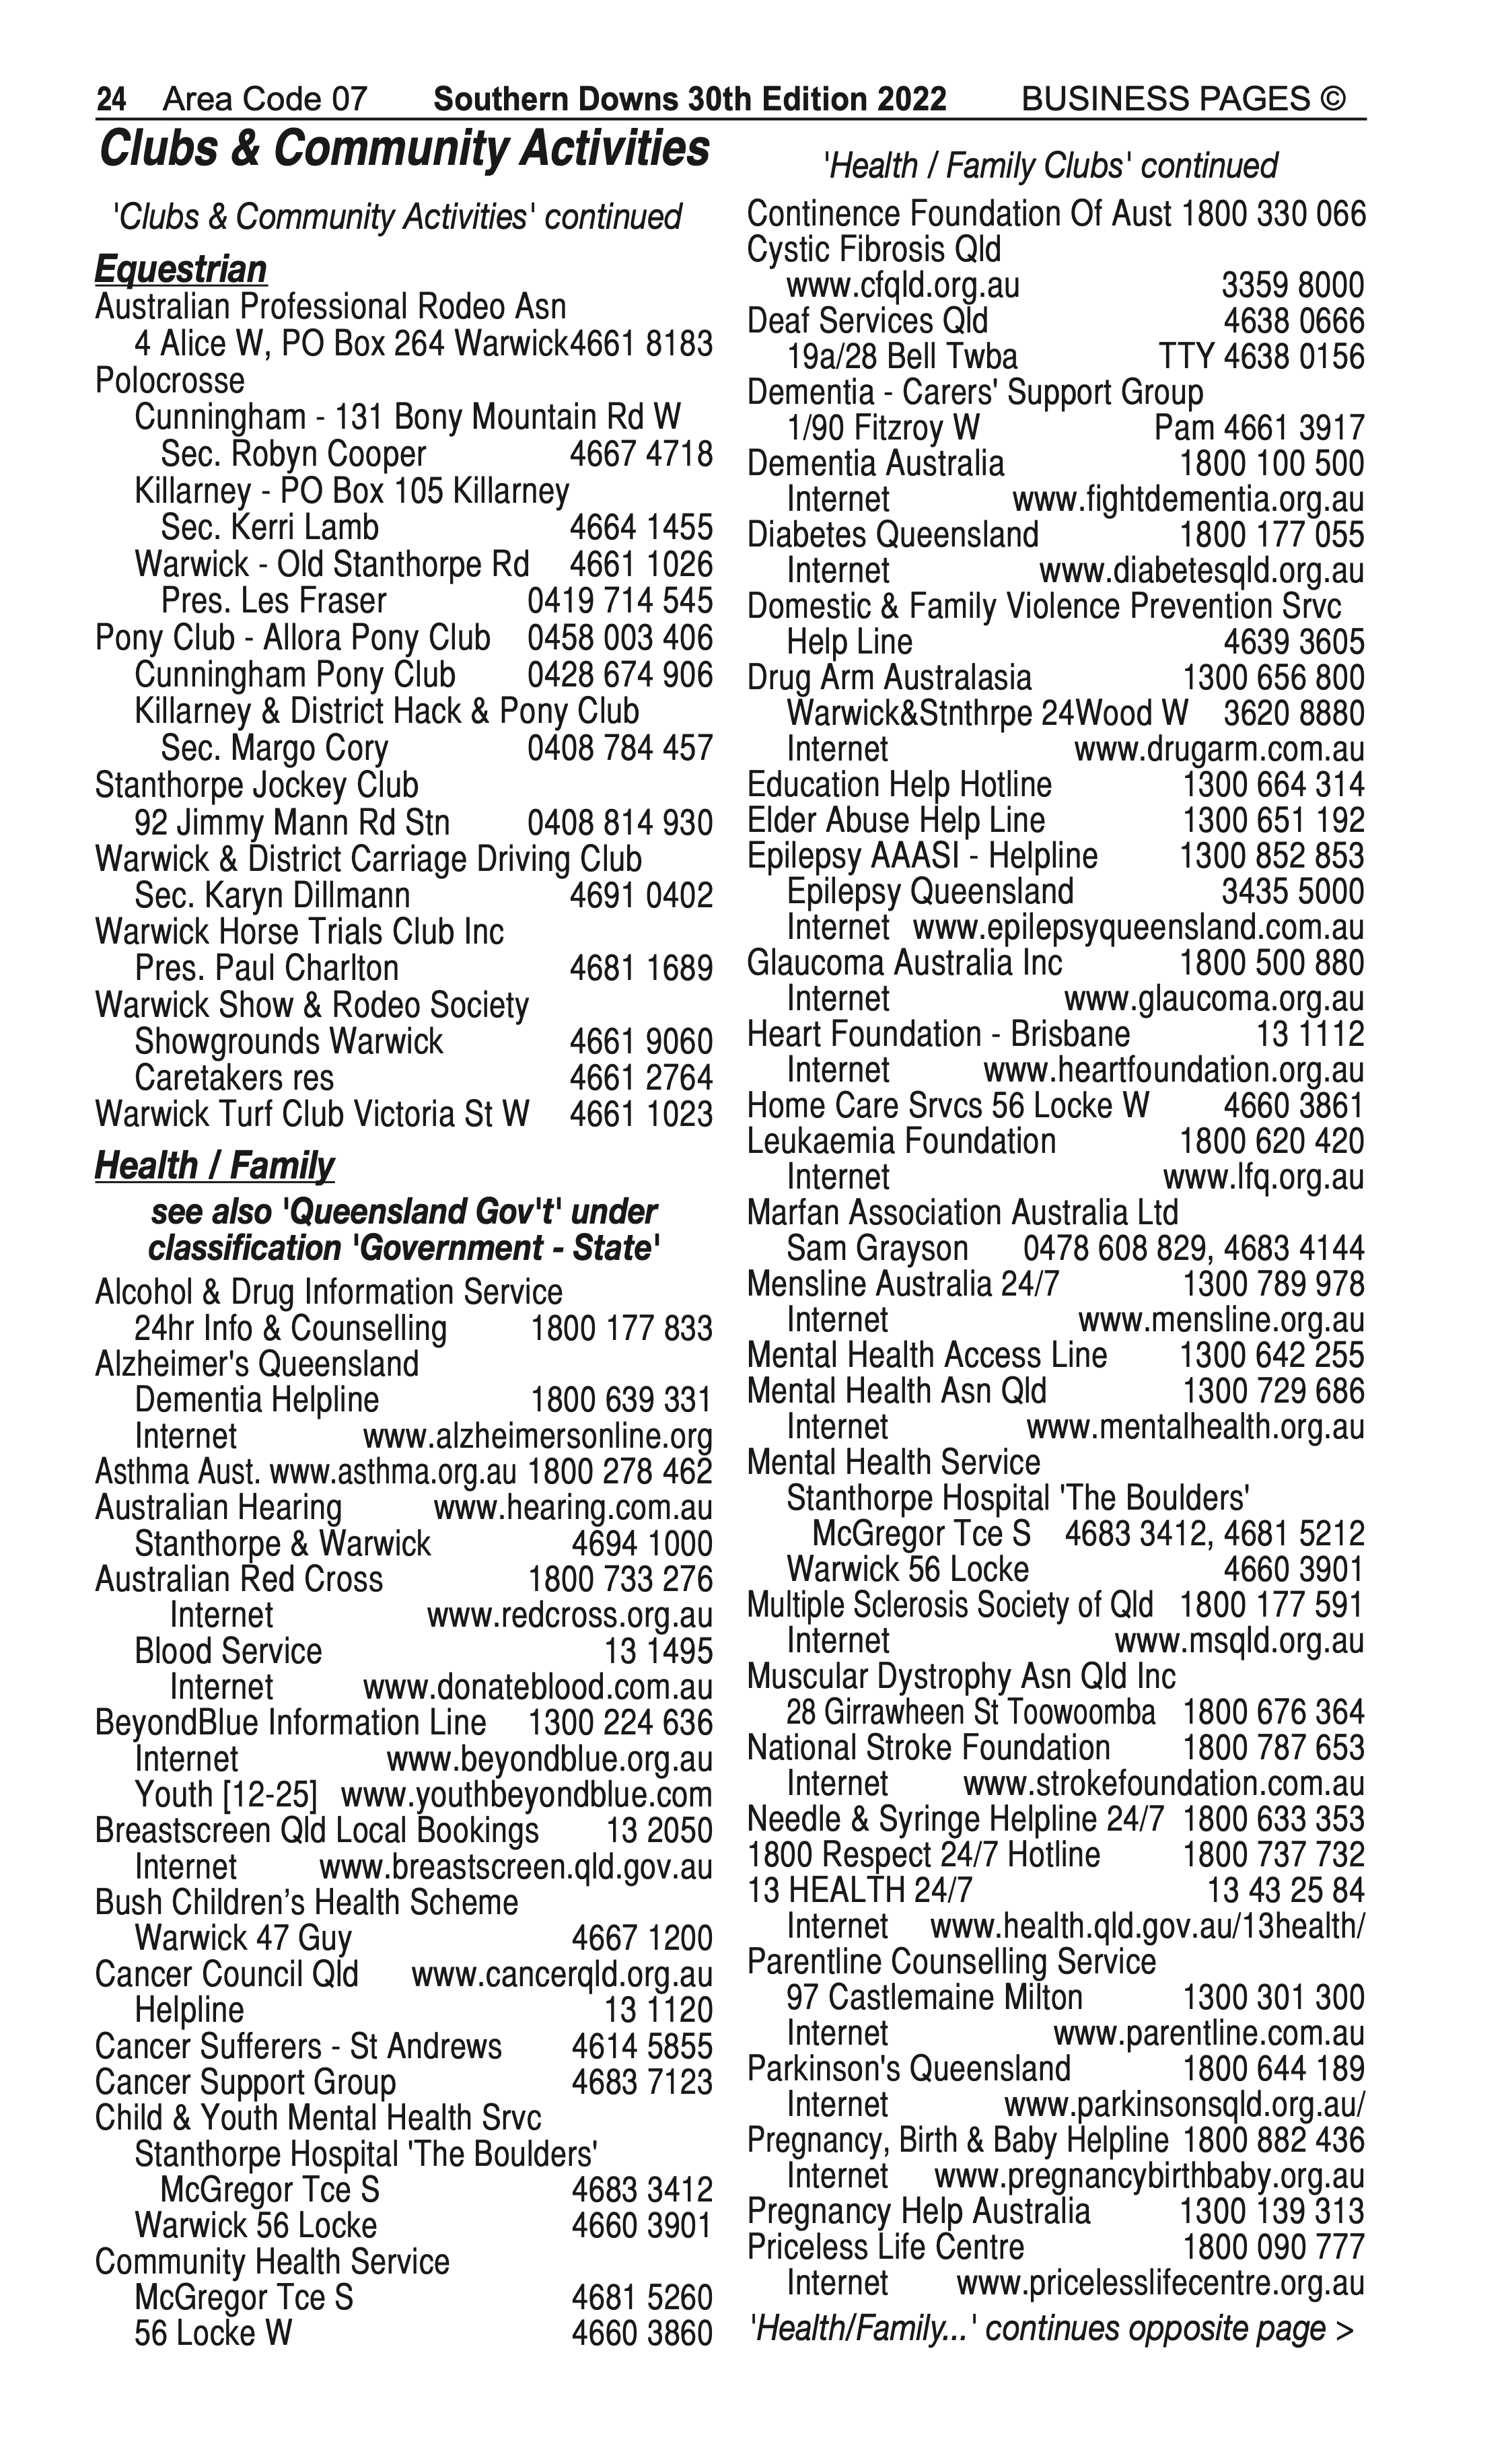 Speed Detailing Pty Ltd | Agricultural – Machinery & Services in Warwick | PBezy Pocket Books local directories - page 24